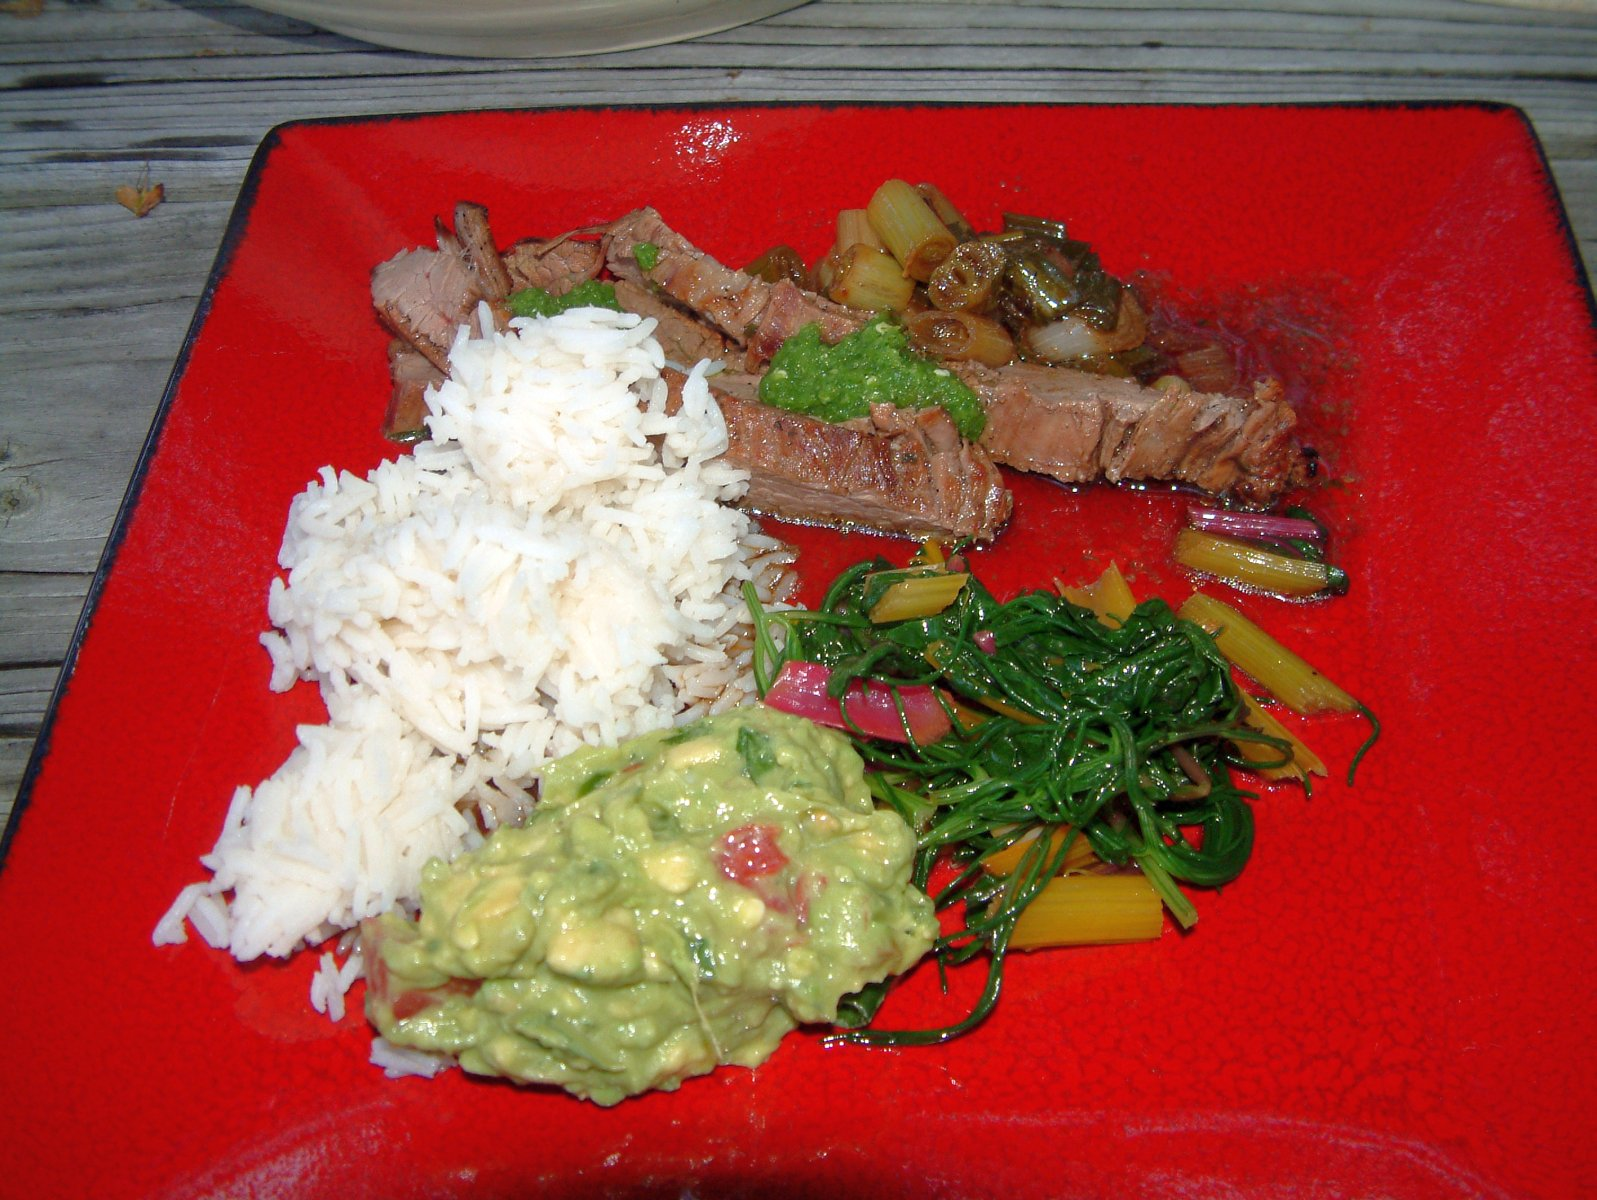 Grilled Beef Shank, Rice, Guacamole, Sauteed Swiss Chard and Chimichurri